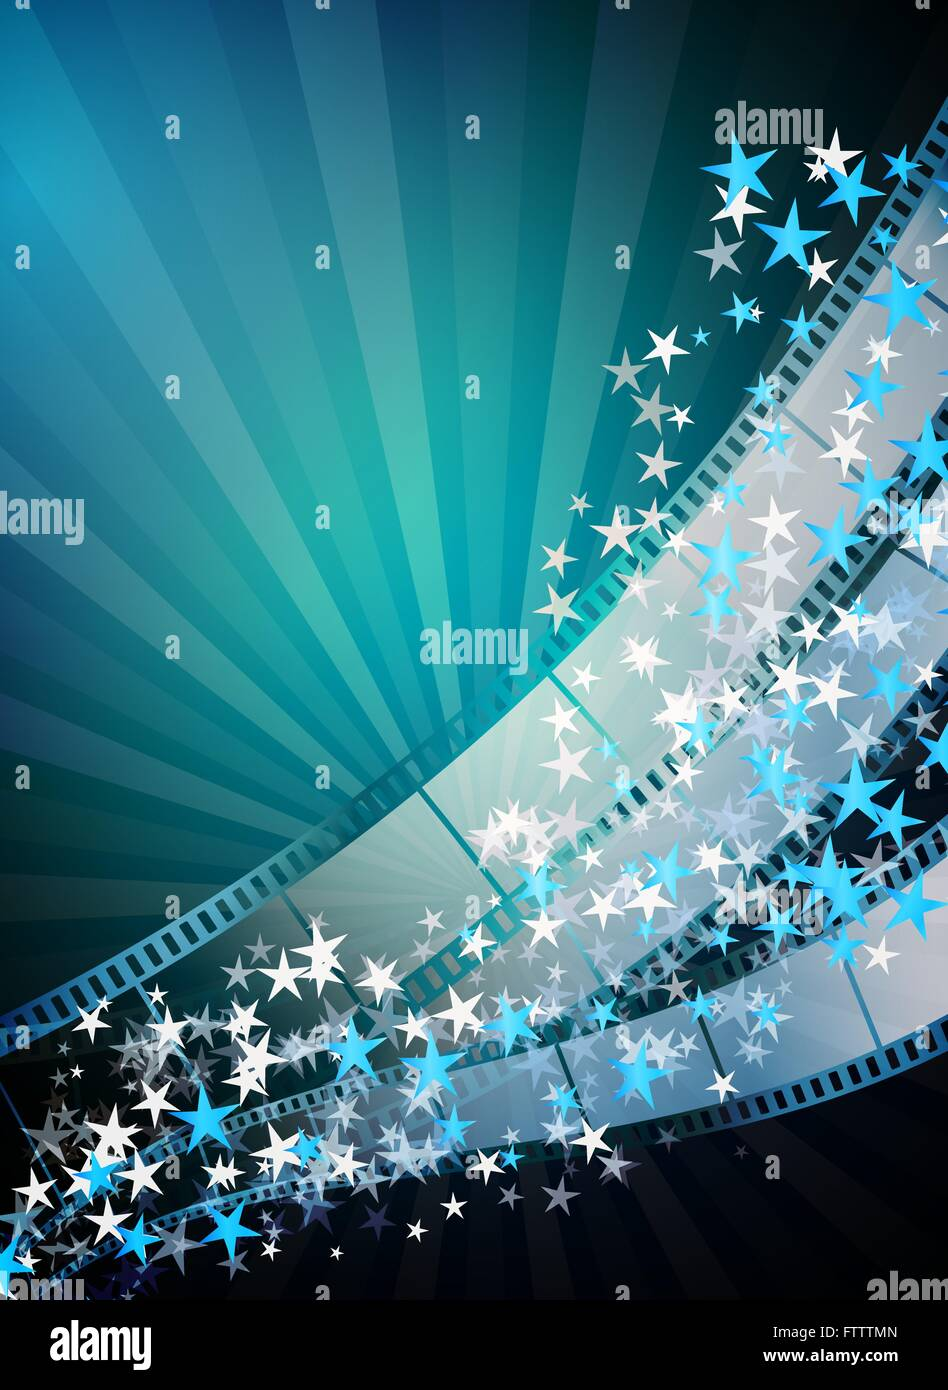 cinema vertical abstract background with film strips